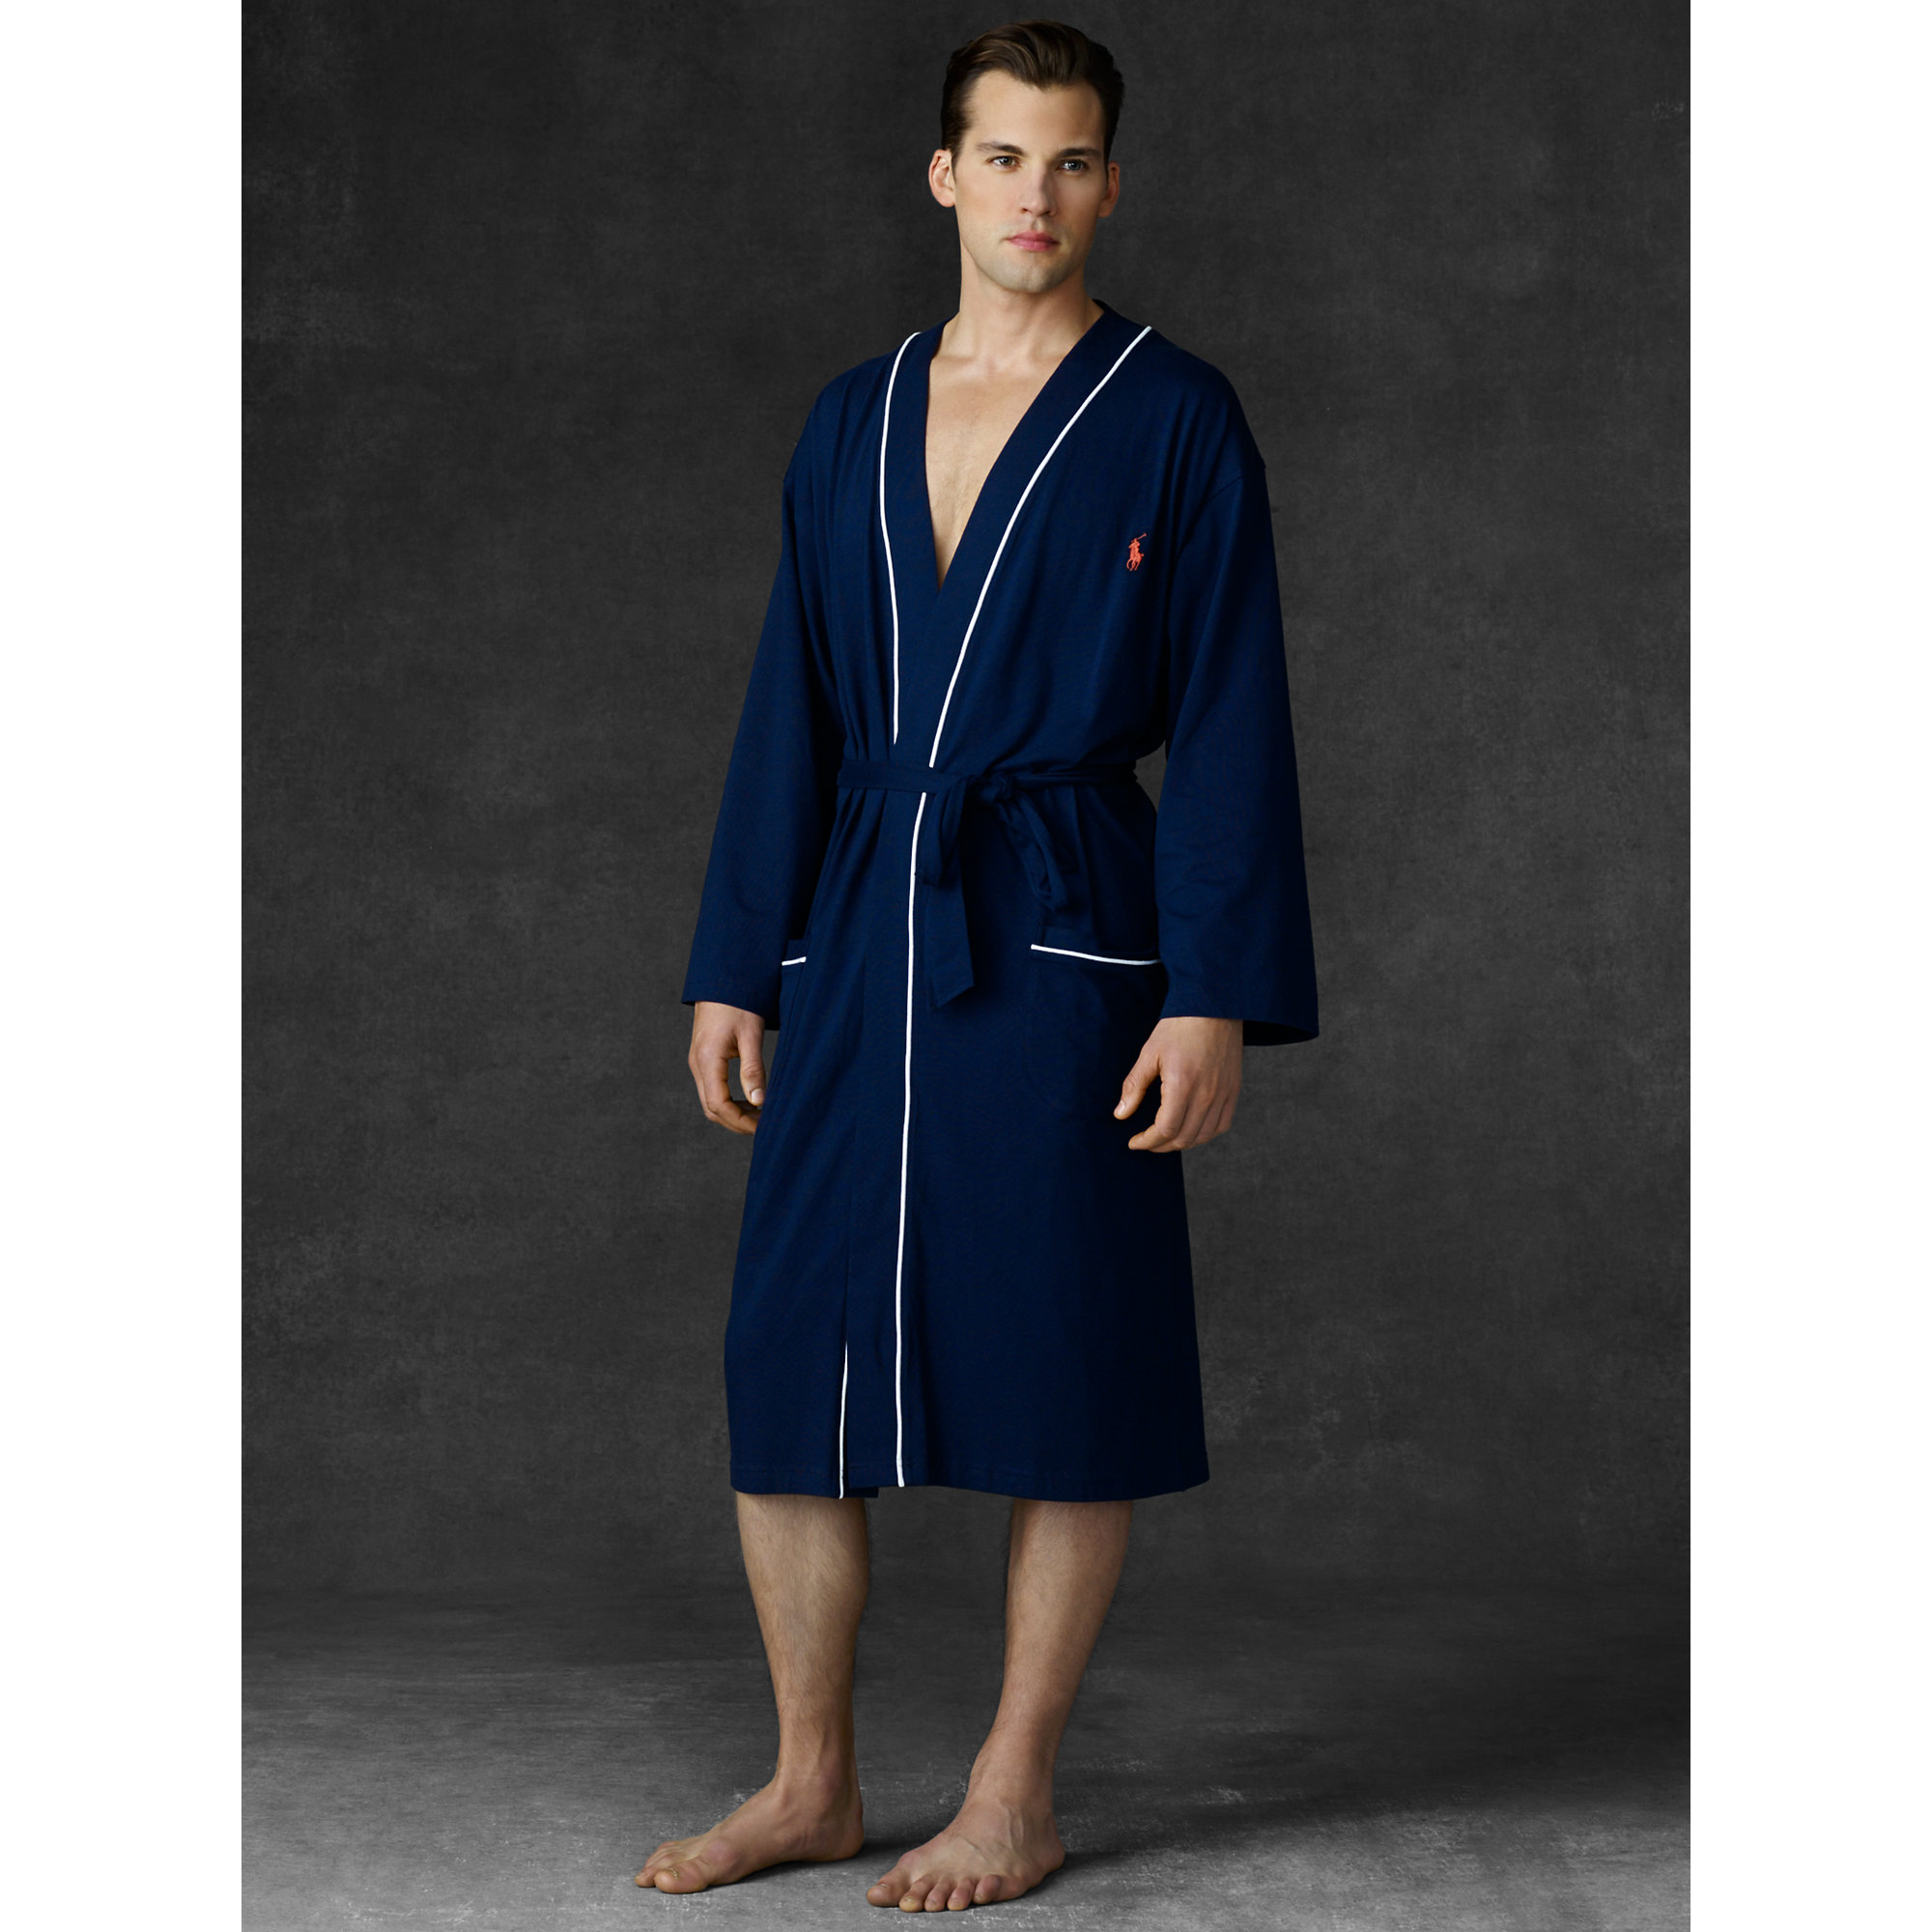 cb98268755a ... top quality lyst polo ralph lauren kimono robe in blue for men 8ebe4  3bb20